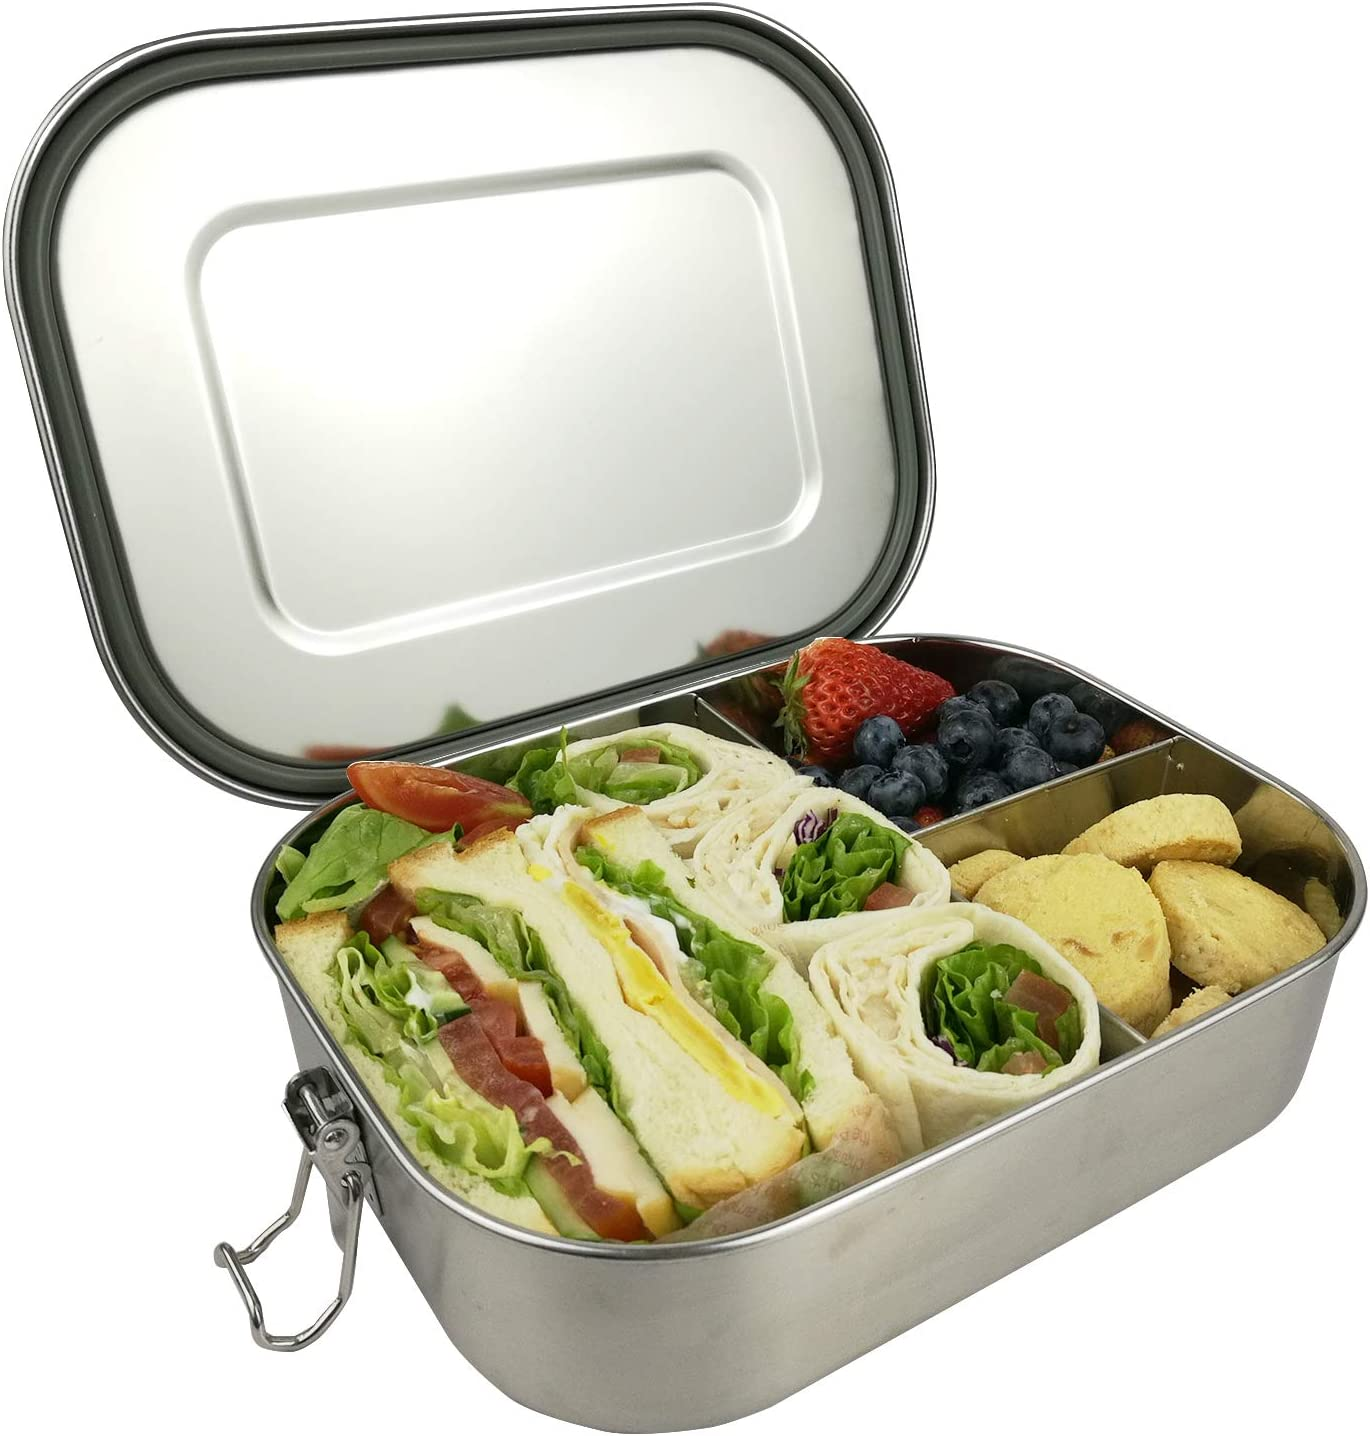 Leak Proof Stainless New Free Shipping Steel Bento container For Al sold out. Kids Lunch